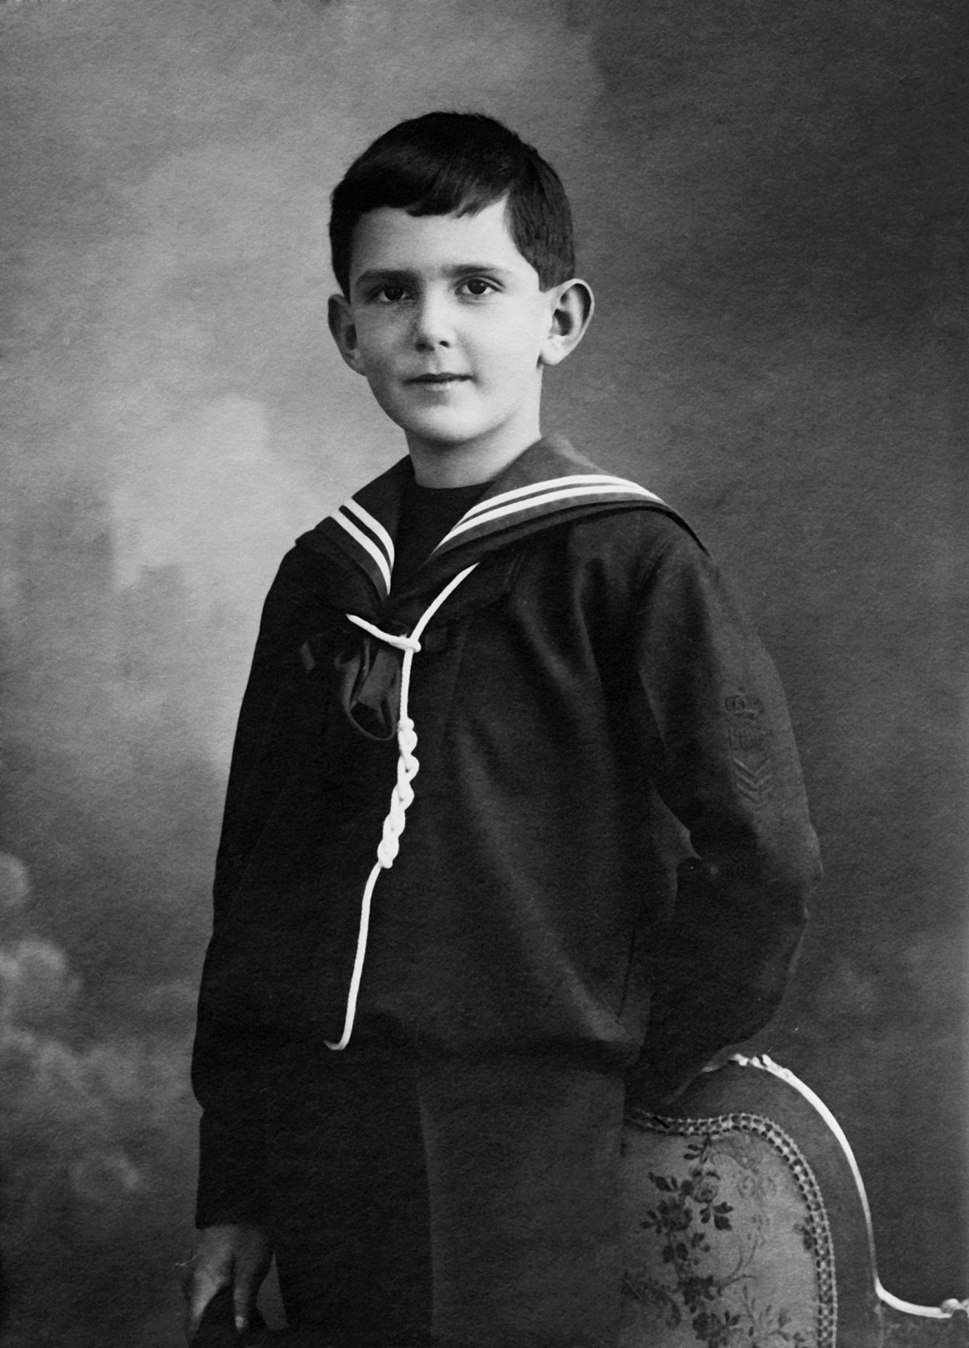 King Umberto II of Italy as a child